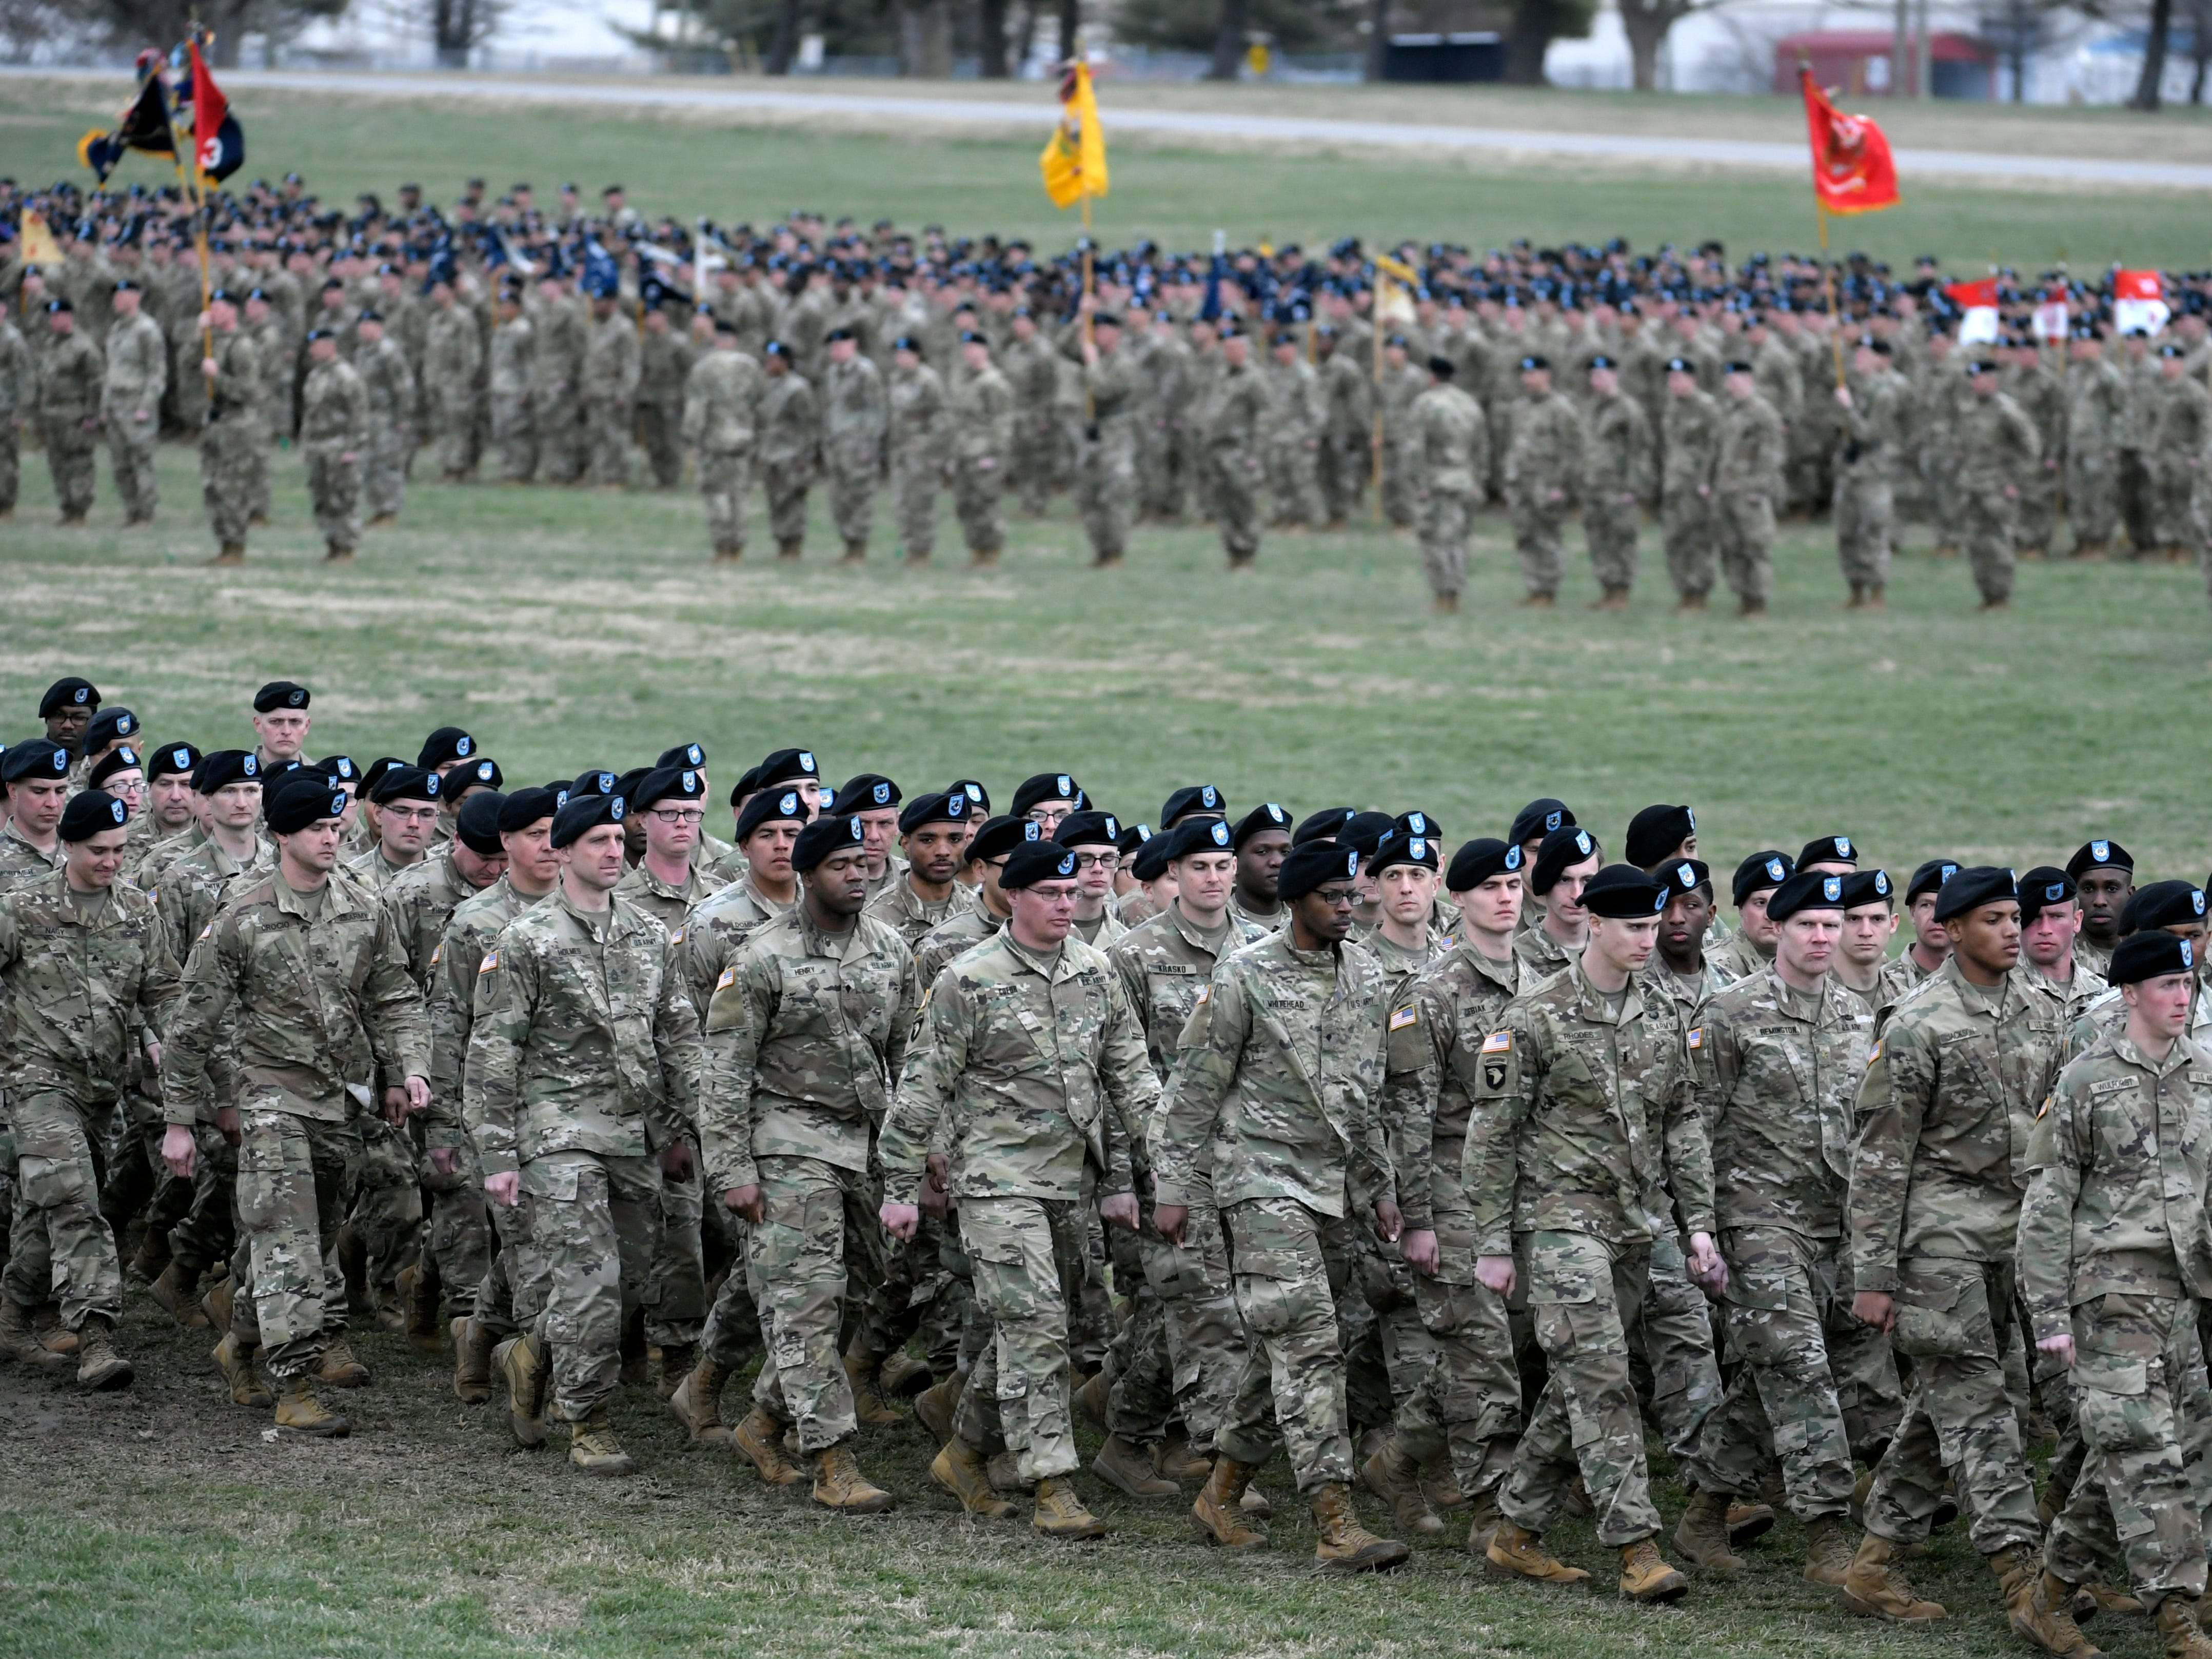 Troops march for a pass and review for Maj. Gen. Brian Winski during a 101st Airborne Division (Air Assault) and Fort Campbell Division Change of Command ceremony in Fort Campbell, KY on Thursday, Feb. 14, 2019.